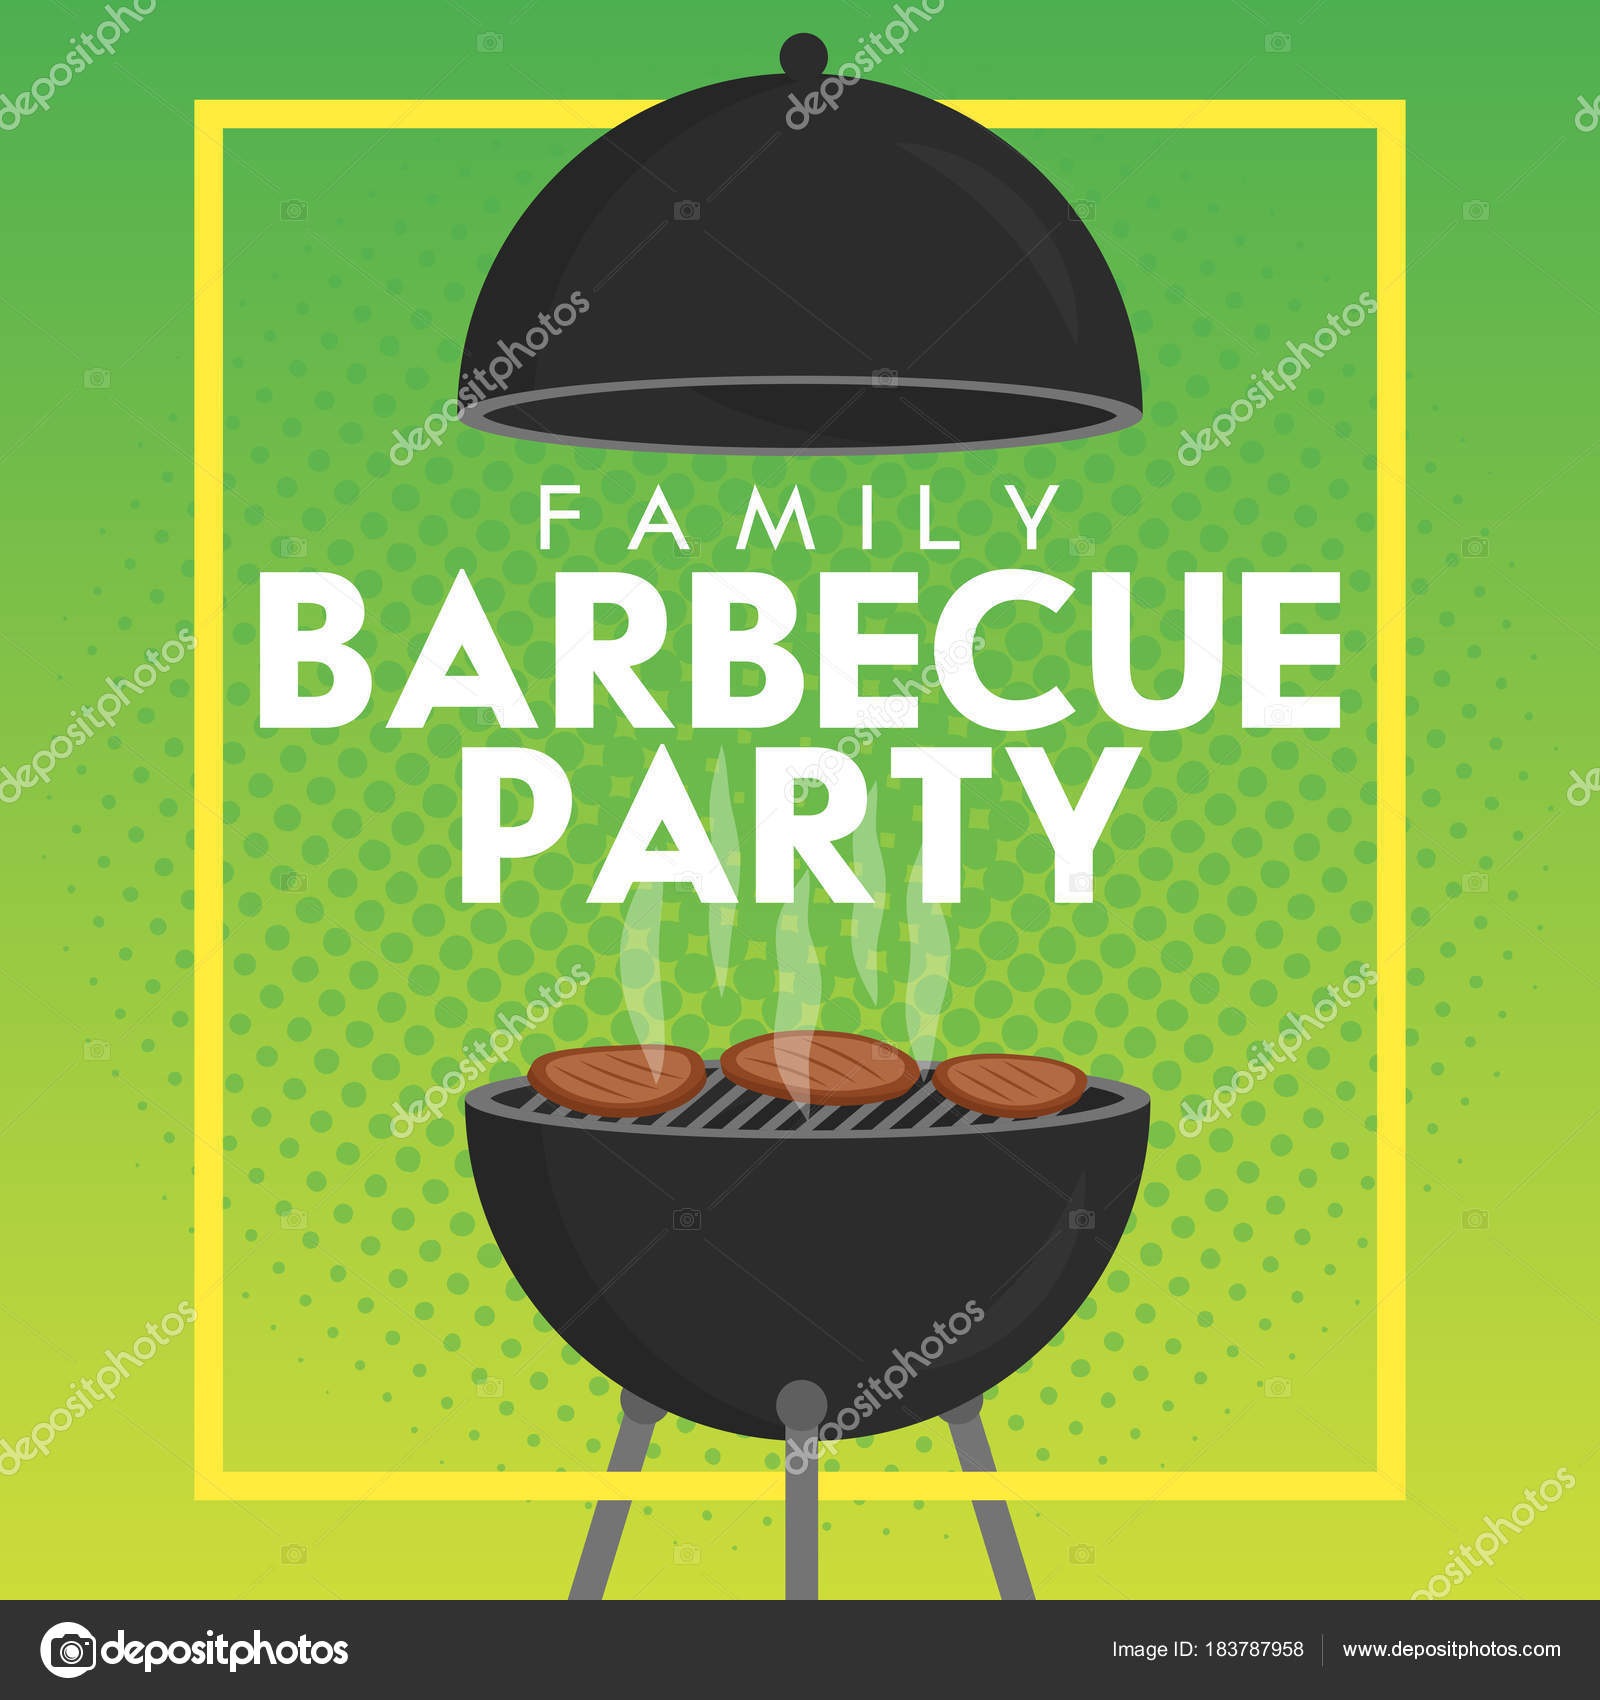 mod le de vecteur belle barbecue party invitation conception de l affiche barbecue barbecue. Black Bedroom Furniture Sets. Home Design Ideas